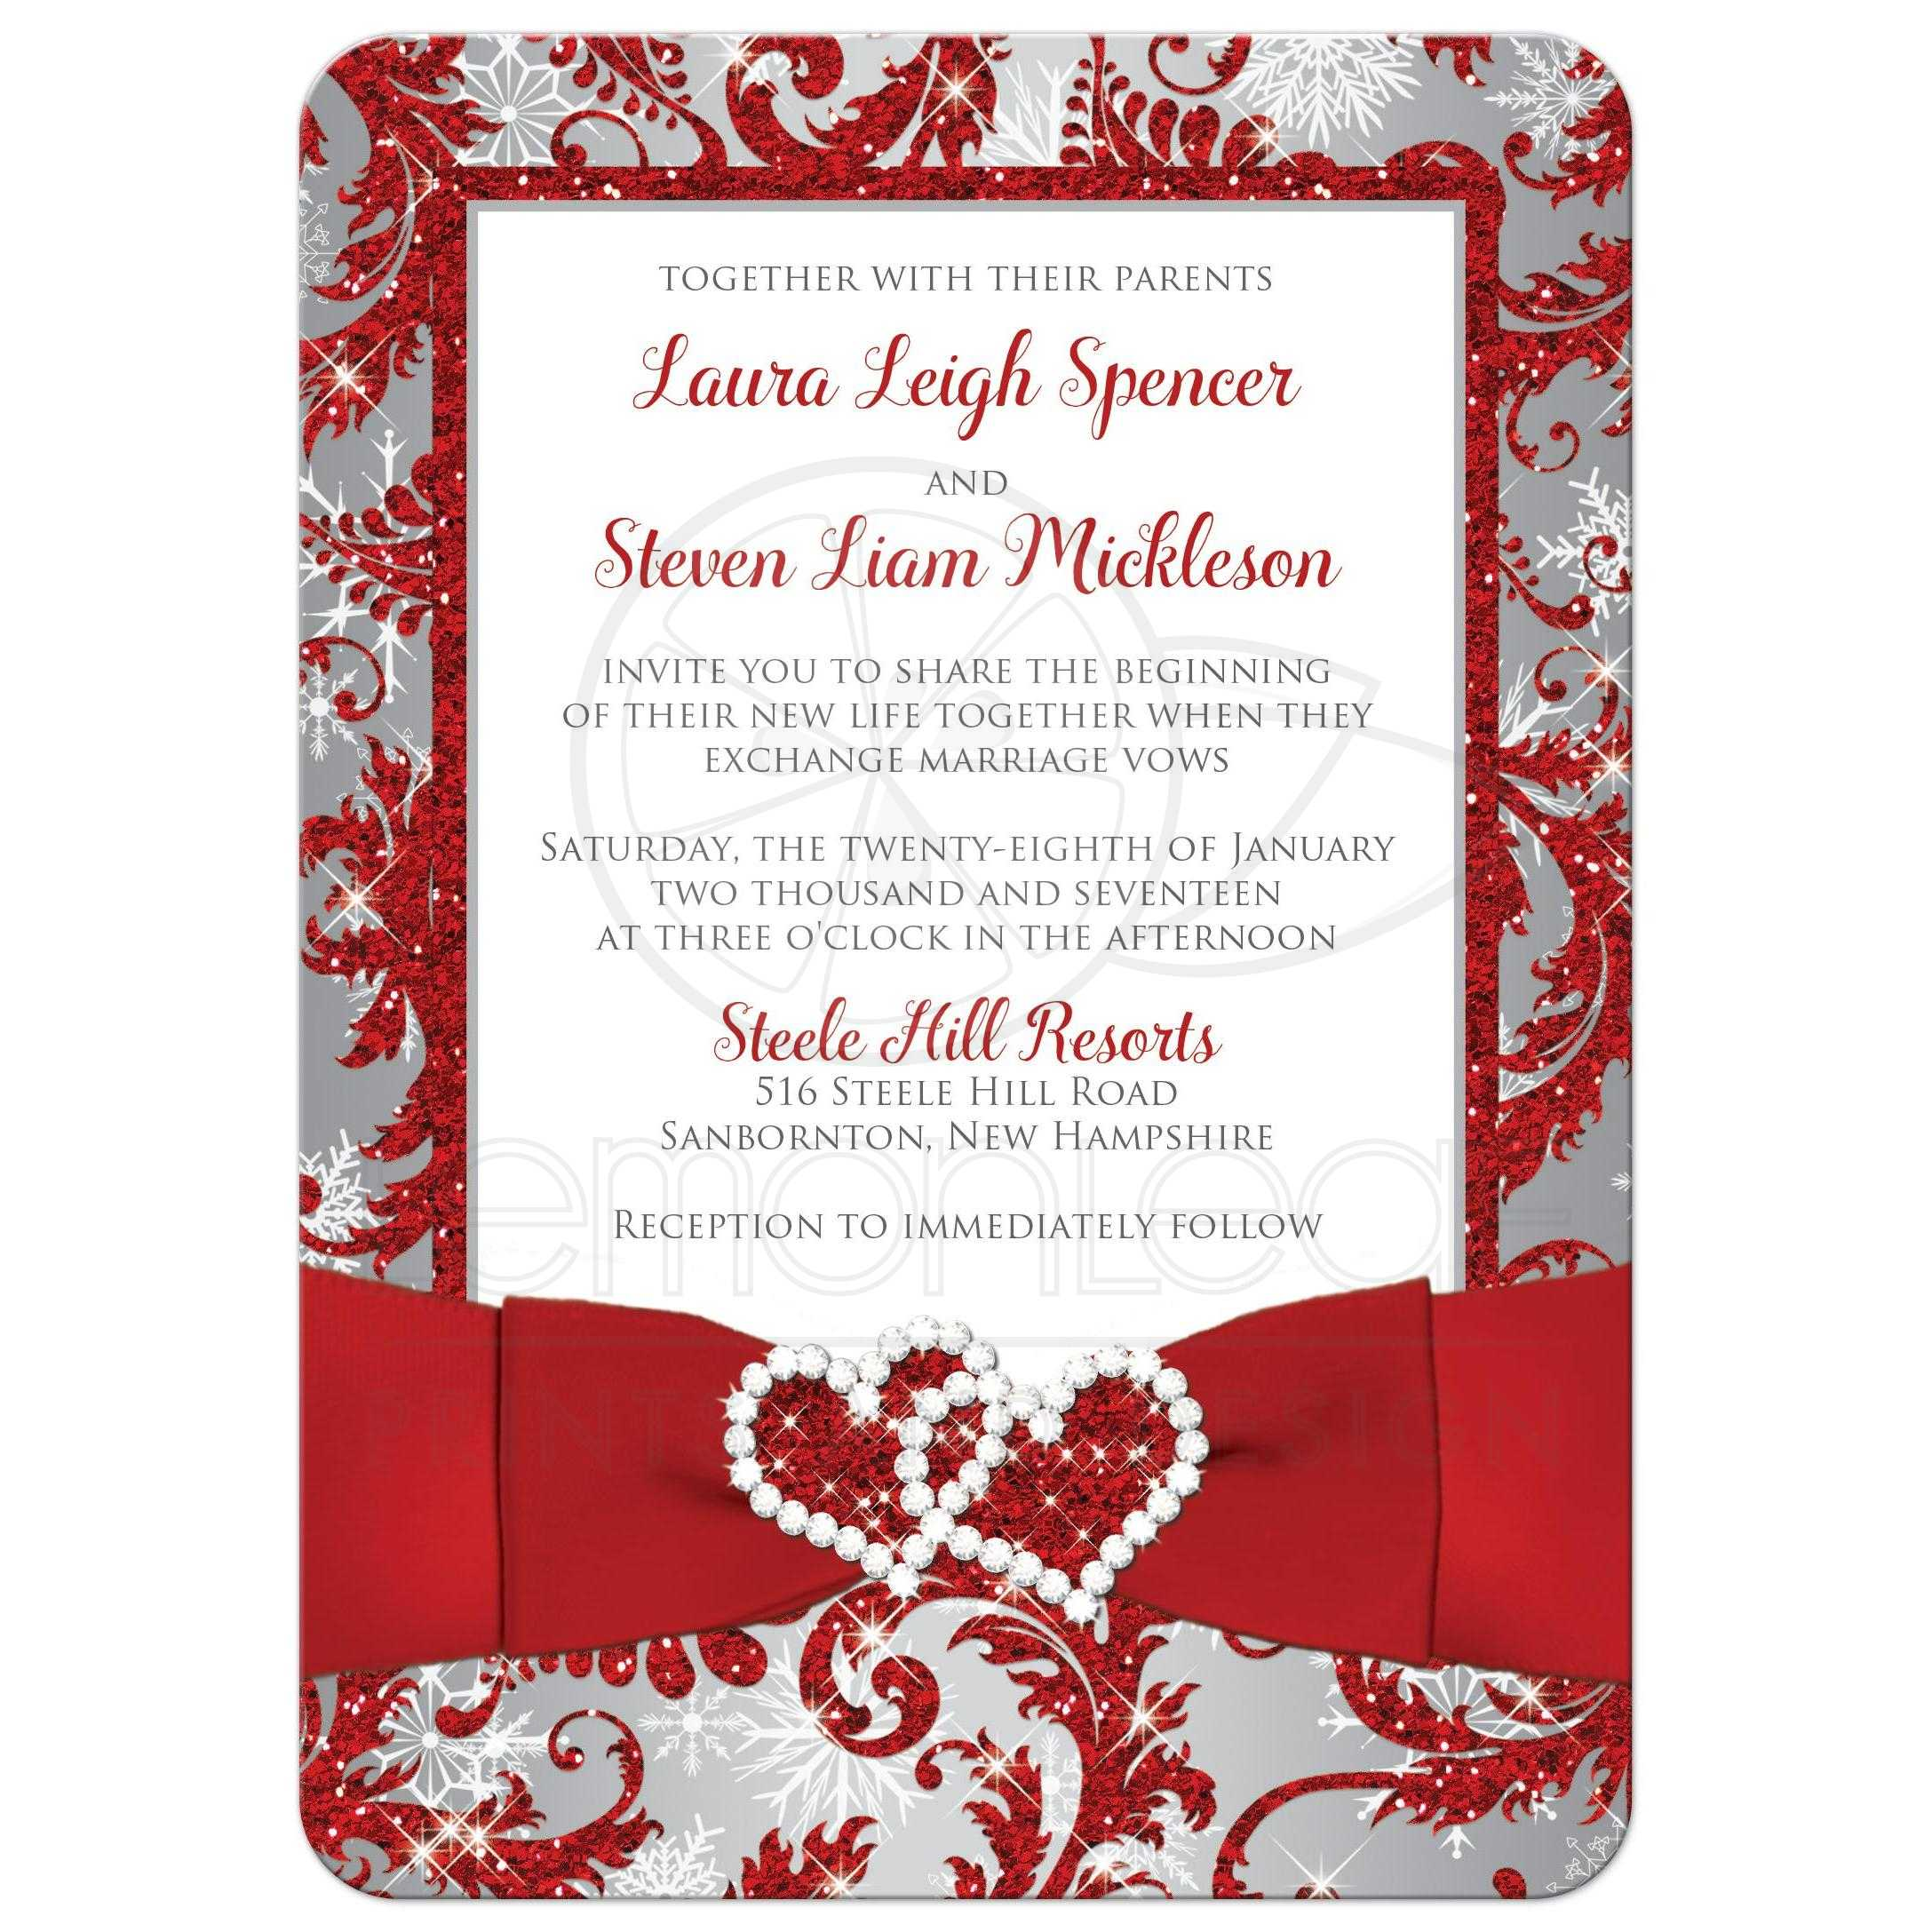 Printable Wedding Invitations Designs With Red And Silver: Wedding Invitation - PHOTO Optional